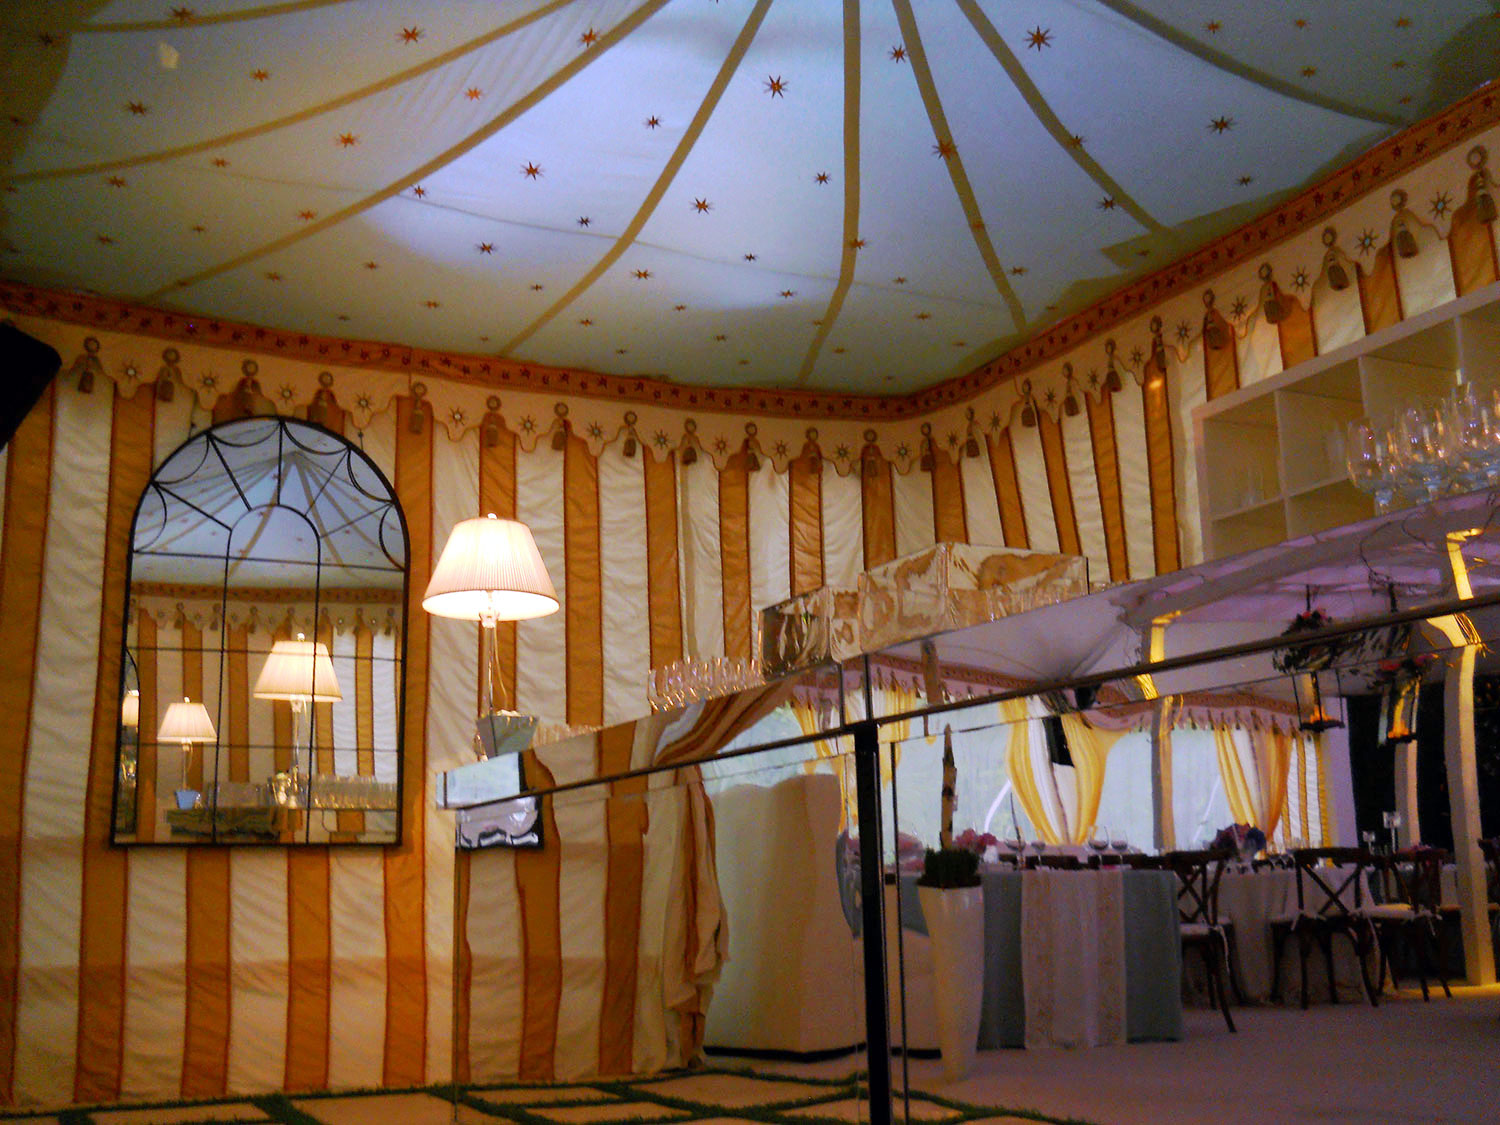 raj-tents-old-hollywood-theme-mirror-bar.jpg